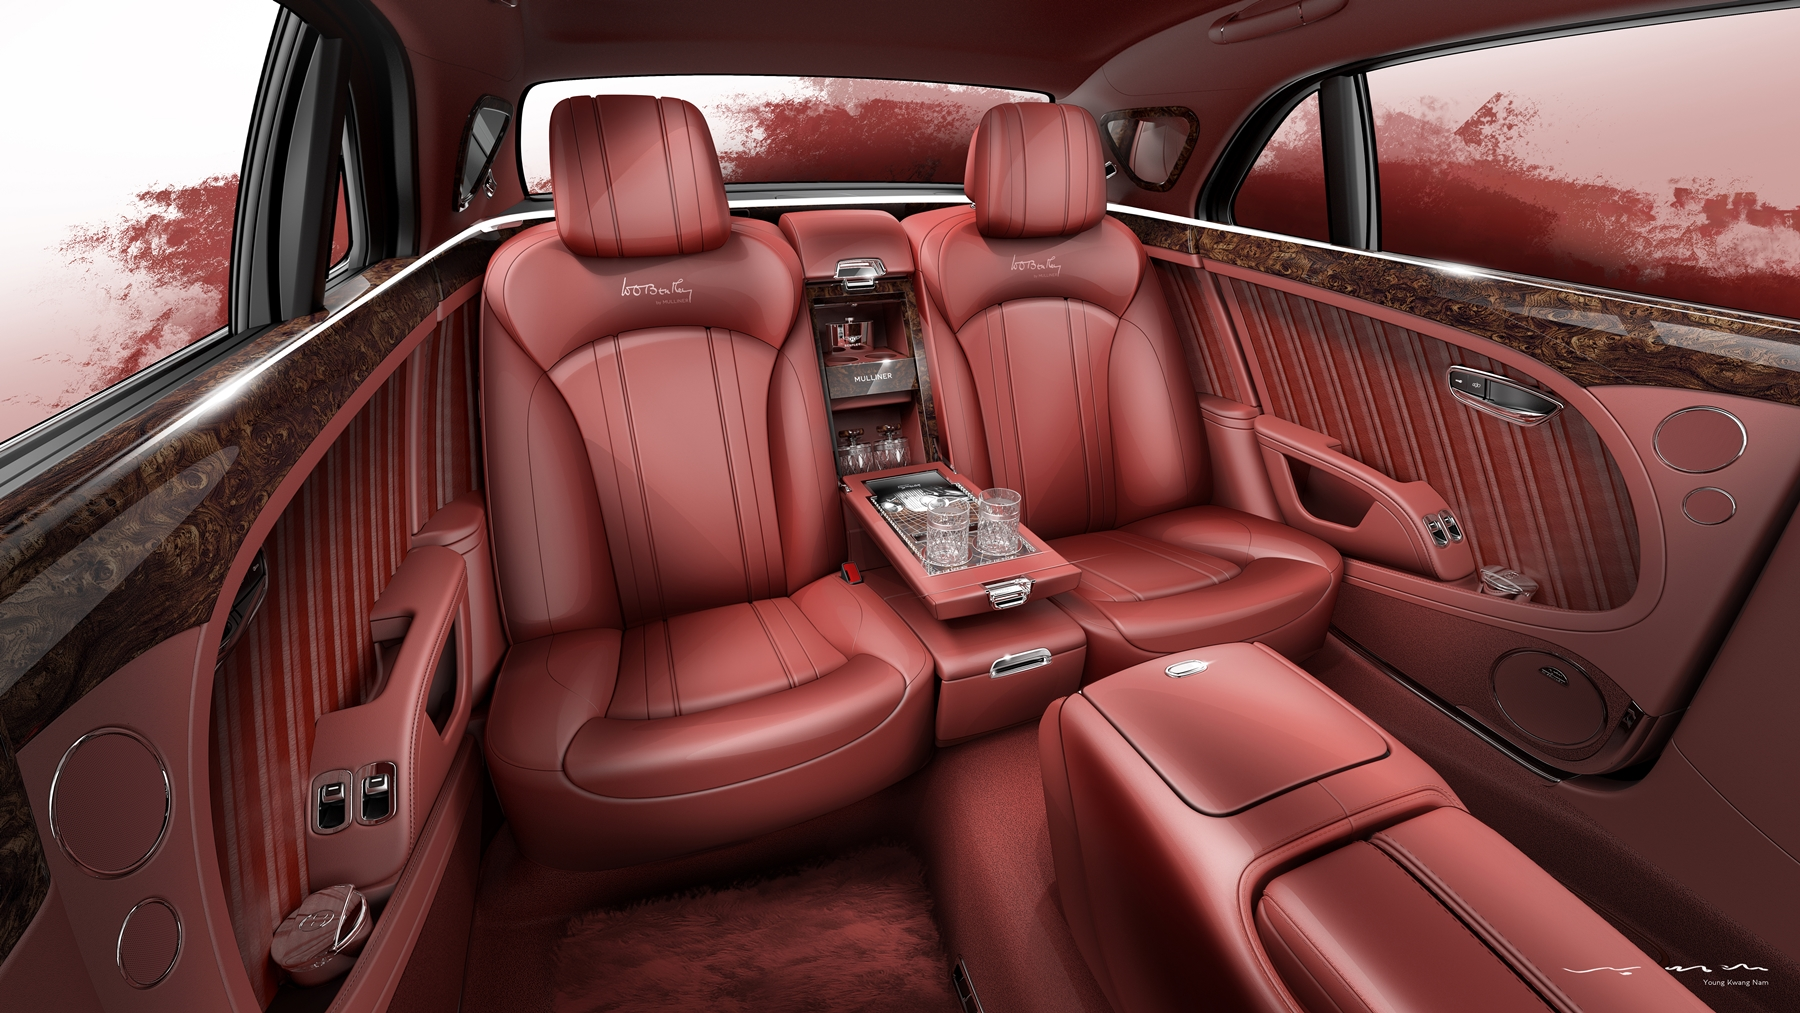 4 - Mulsanne WO Edition InteriorWM